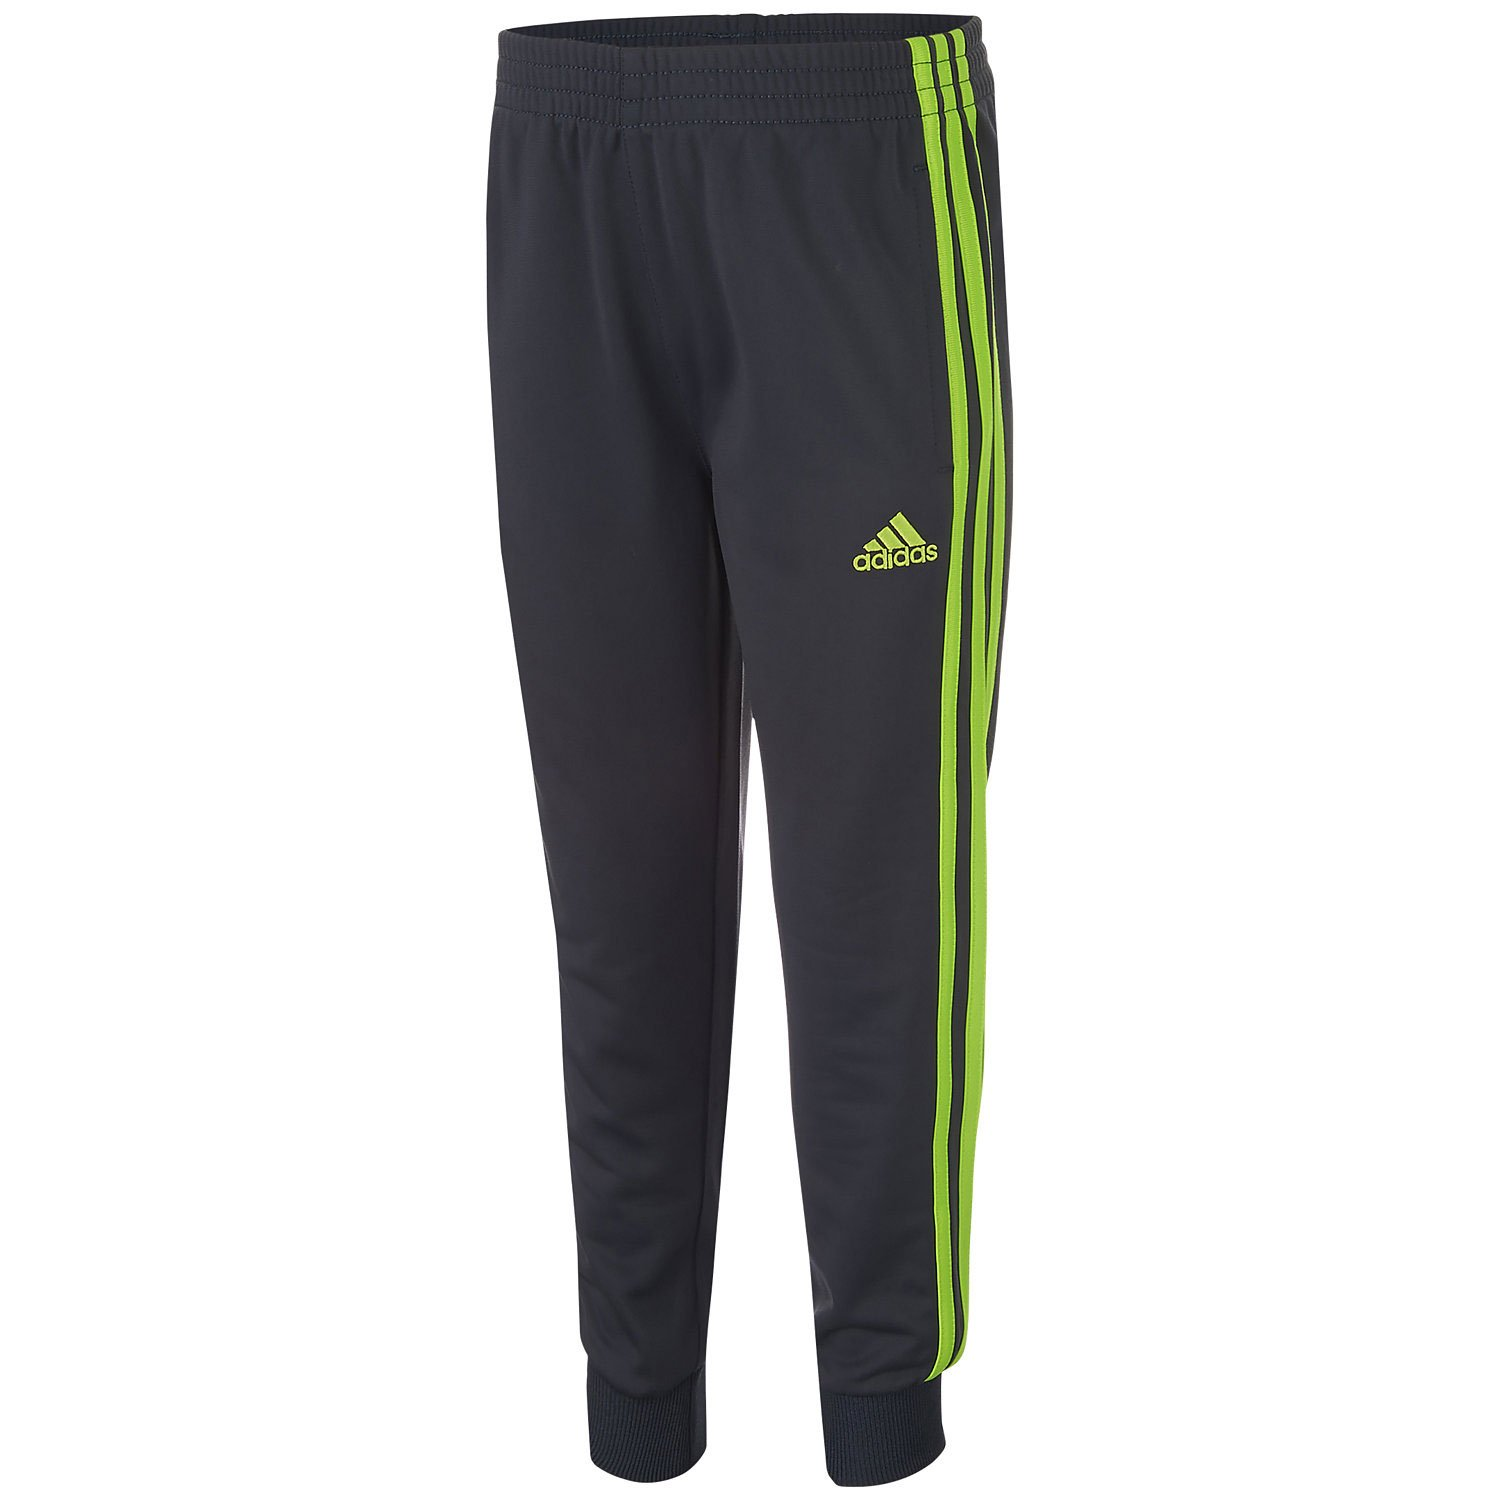 adidas Little Boys' Tricot Jogger Pant (4) Lime by adidas